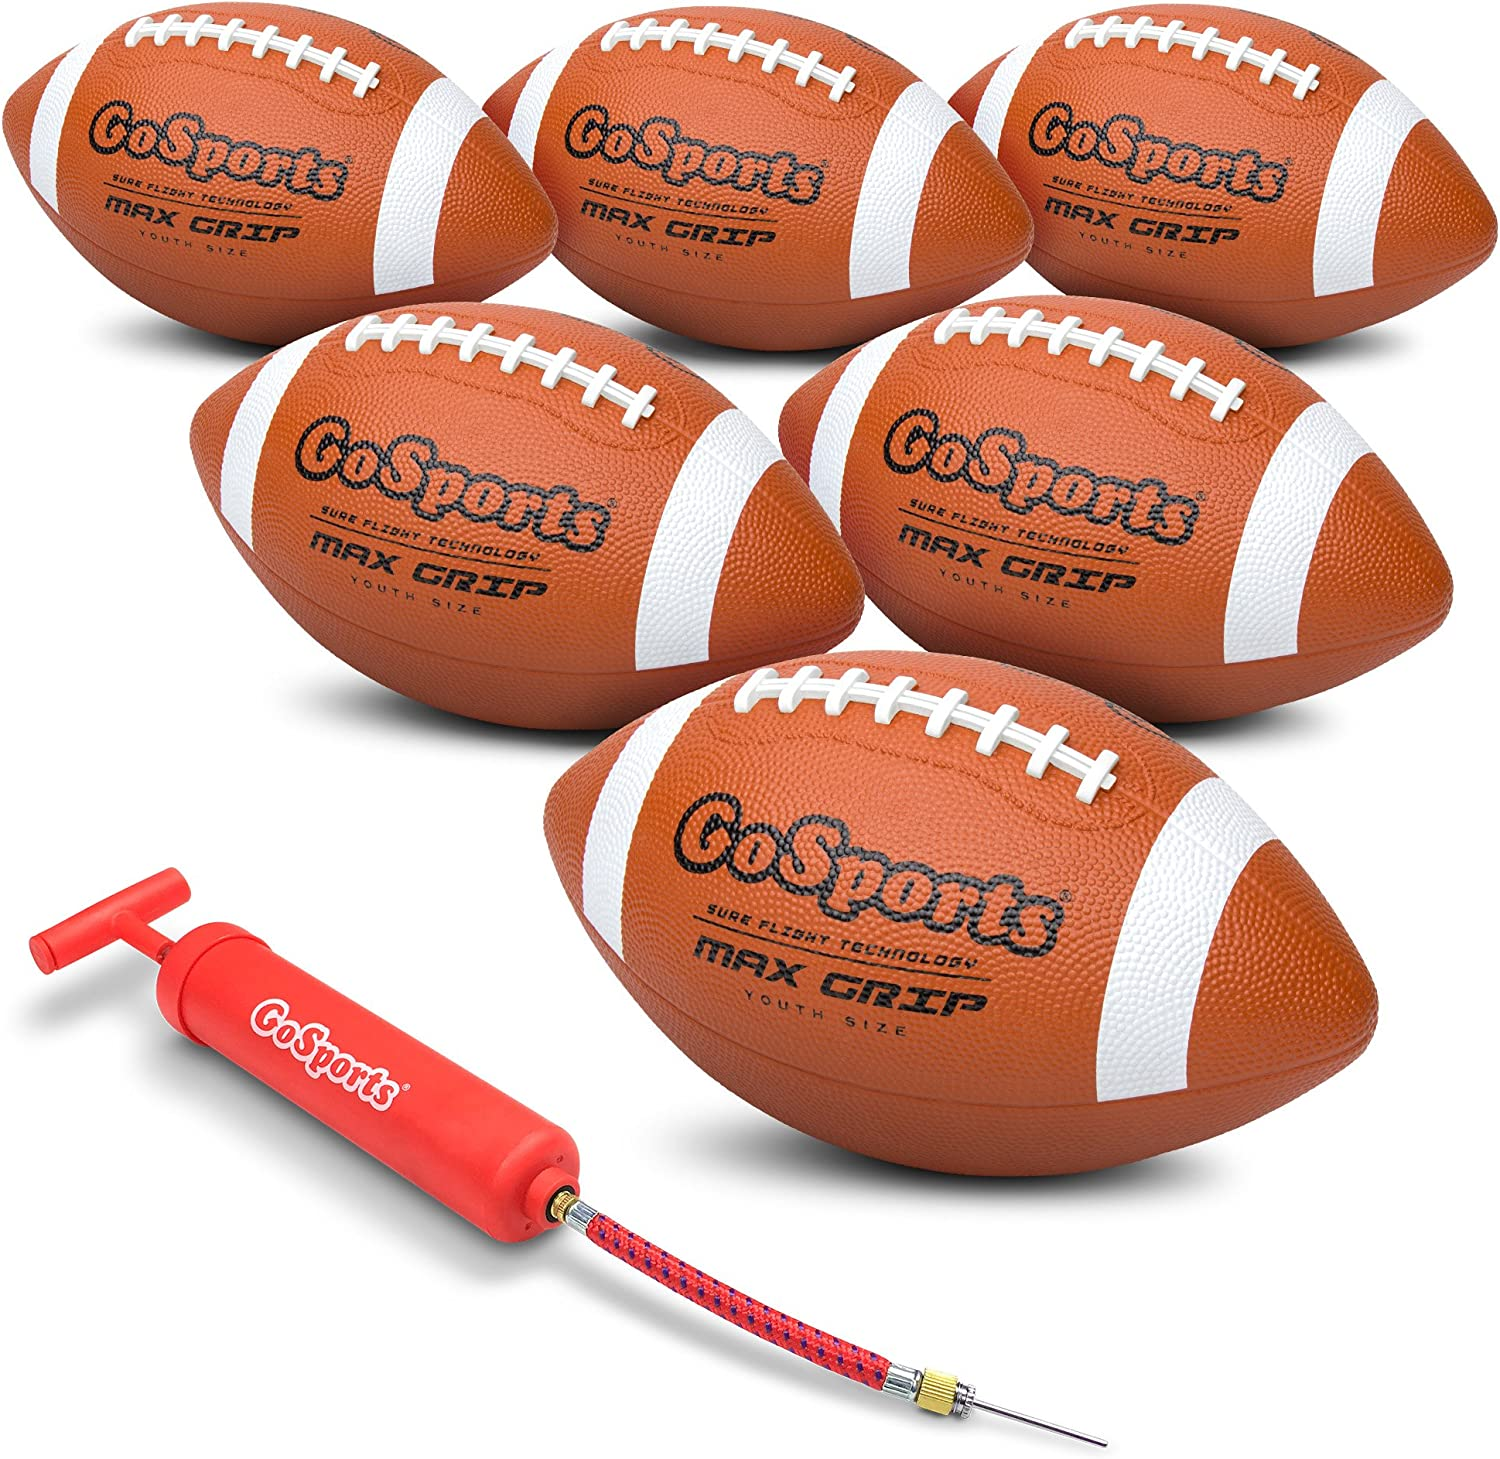 GoSports Rubber Footballs - 6 Pack of Youth Size Balls with Pump & Carrying Bag